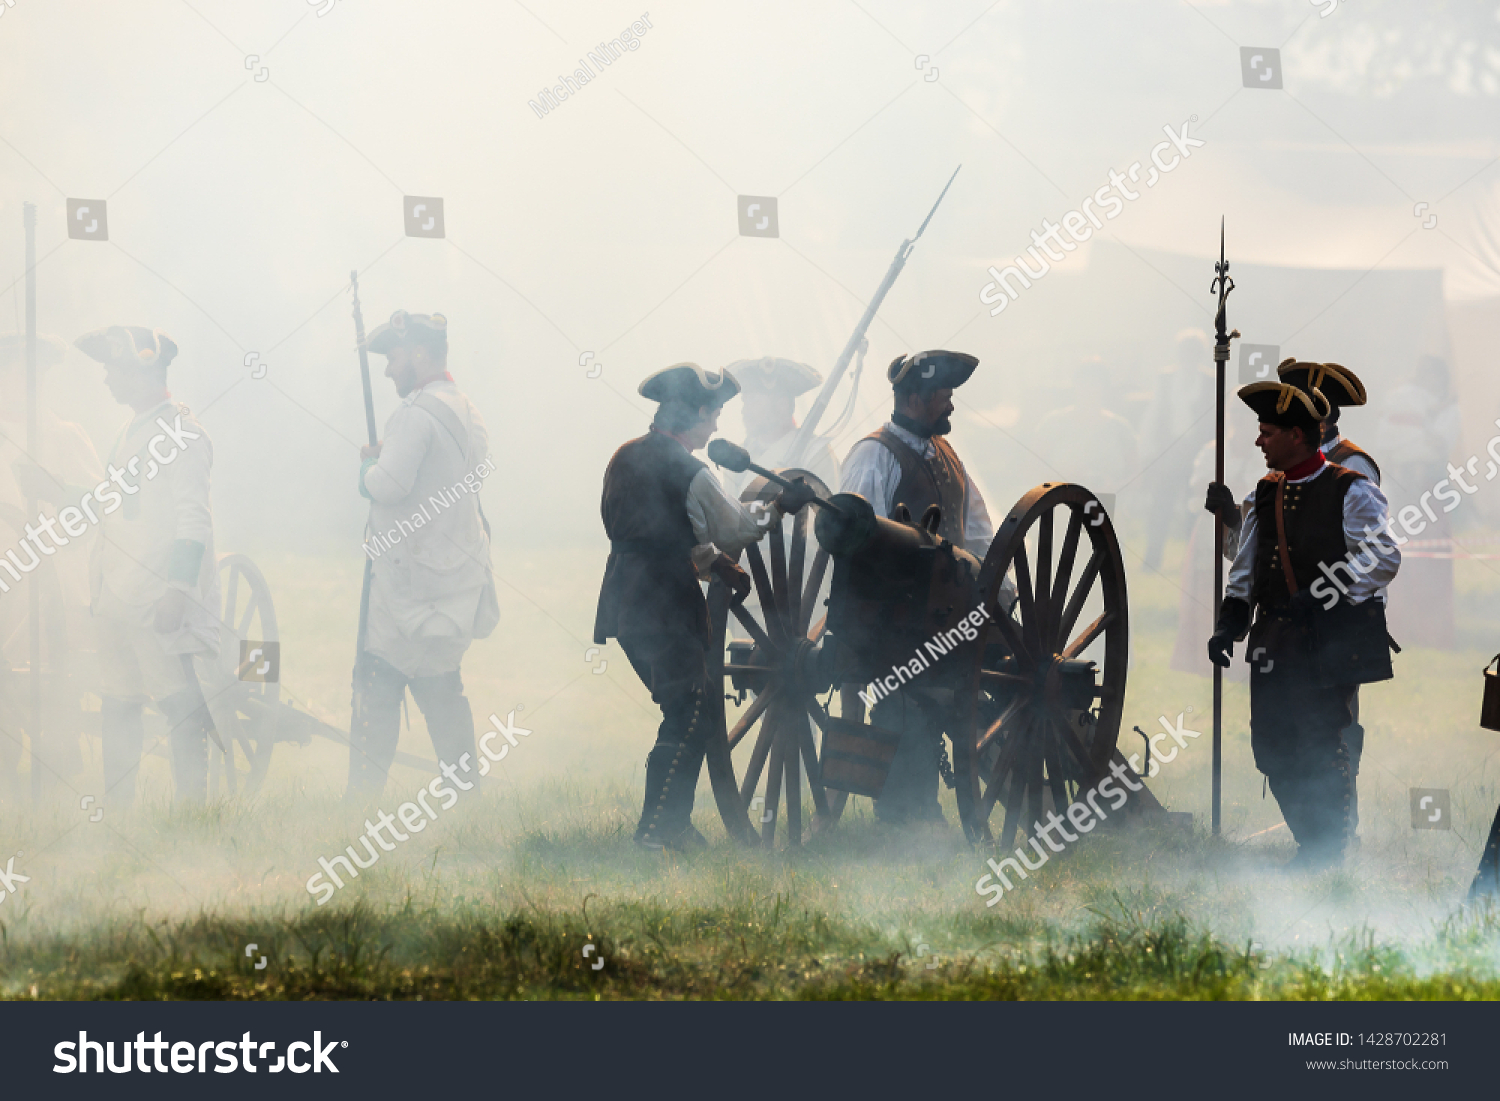 KOLÍN, CZECH REPUBLICK - June 16, 2019: The historical appearance of the Battle of Kolin between Prussian and Austrian troops played by amateur historical groups.